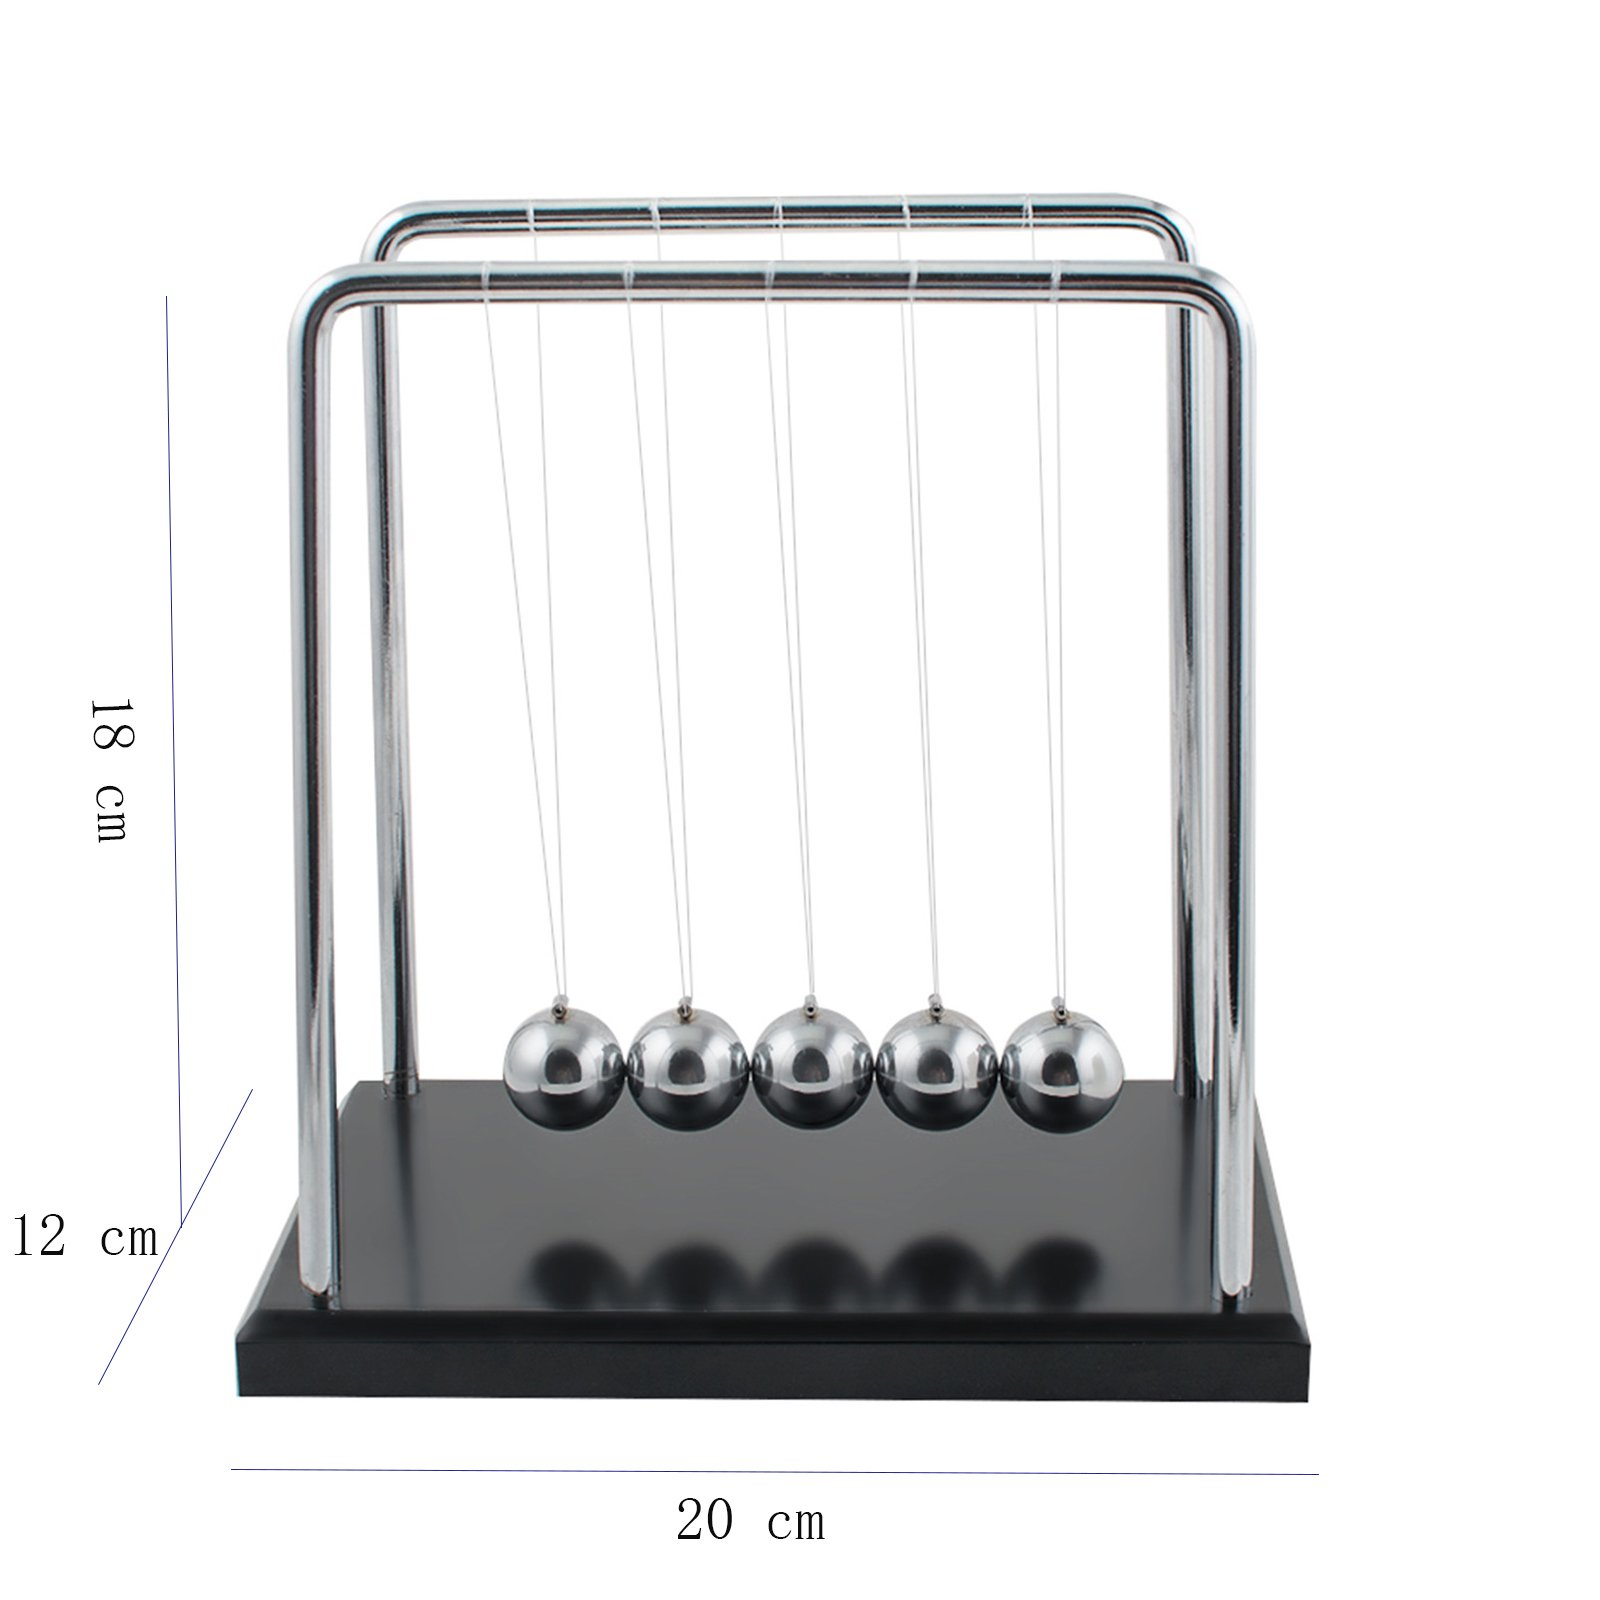 Carejoy Newton\'s Cradle, Newton\'s Cradle Balance Balls with Metal Balance Ball and Black Wooden Base accompany Your Child's Grown-up